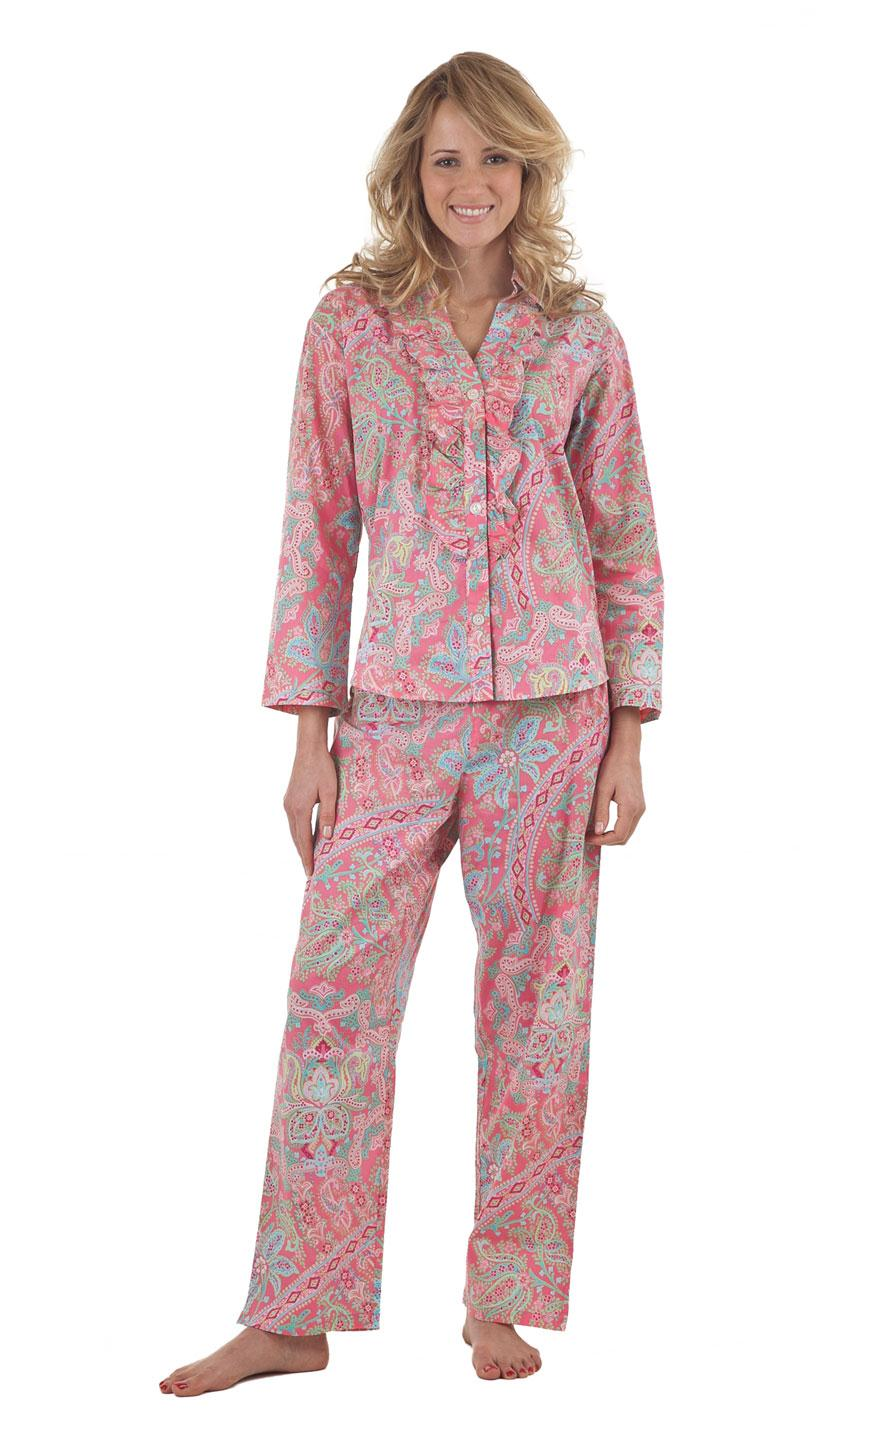 You've searched for Women's Pajamas & Robes! Etsy has thousands of unique options to choose from, like handmade goods, vintage finds, and one-of-a-kind gifts. Our global marketplace of sellers can help you find extraordinary items at any price range.